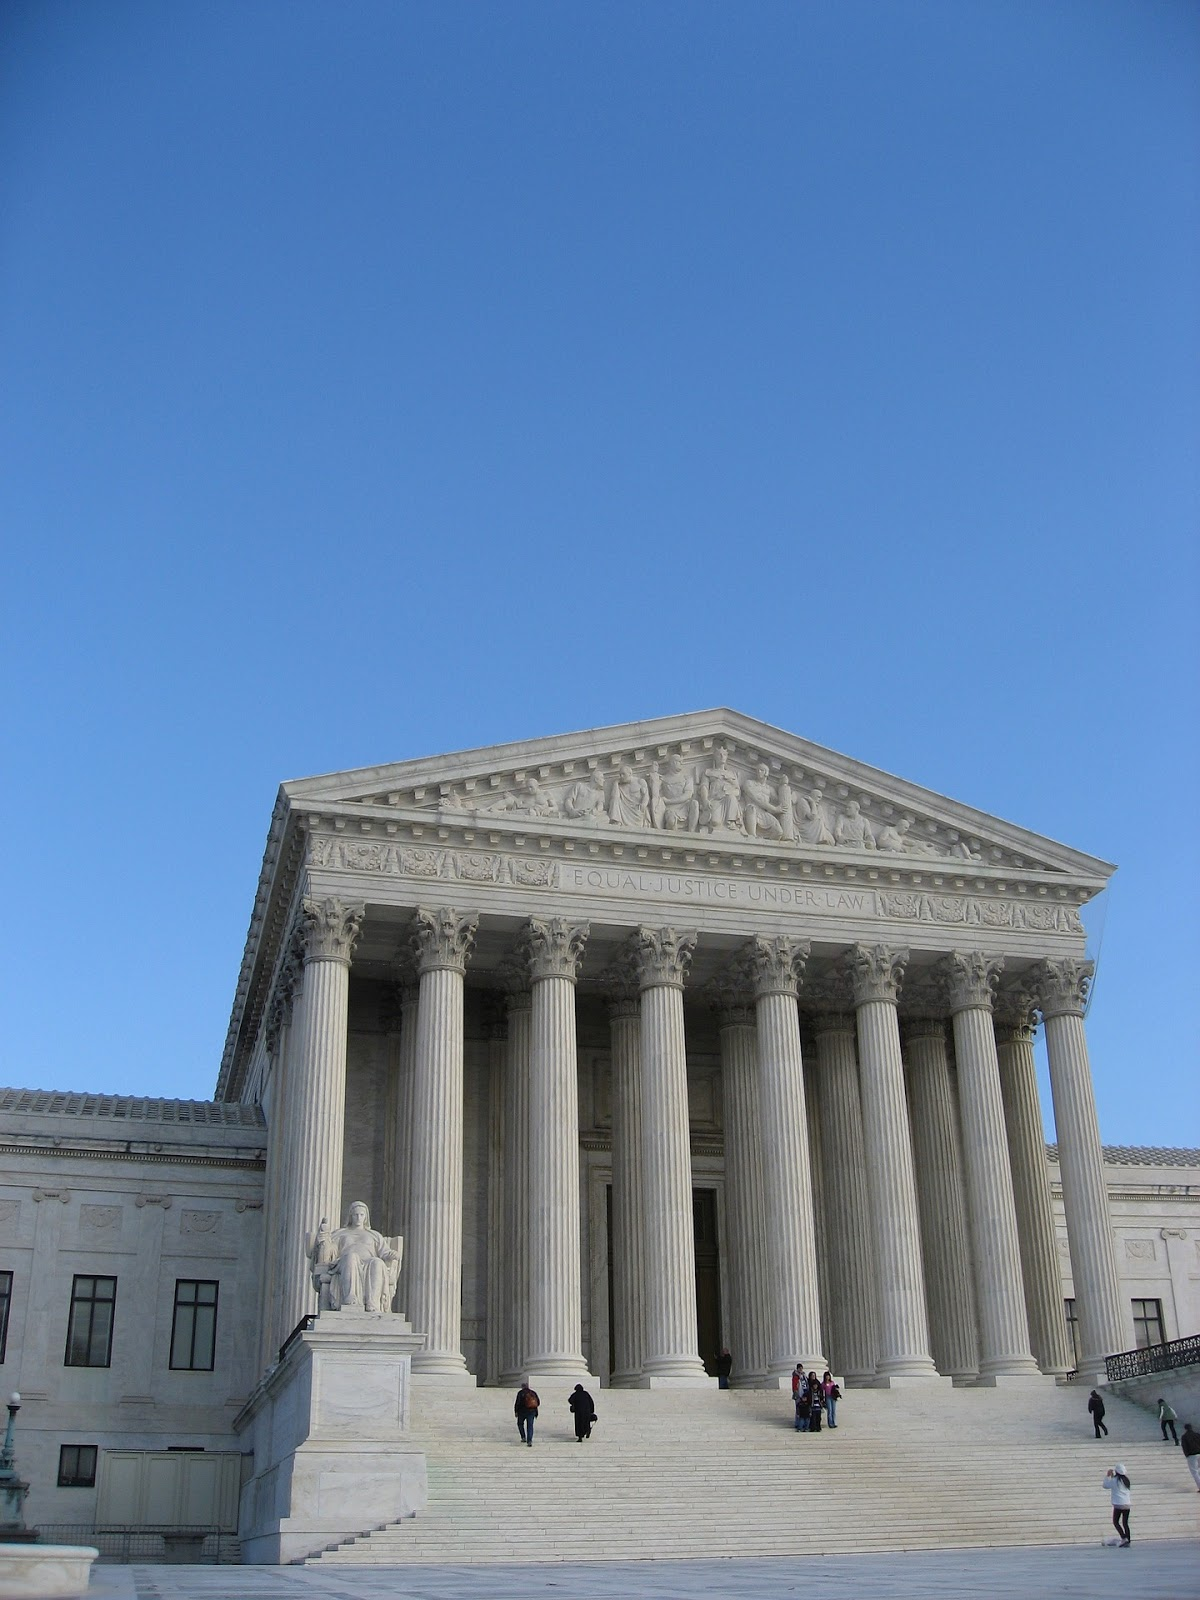 Picture of U.S supreme court.